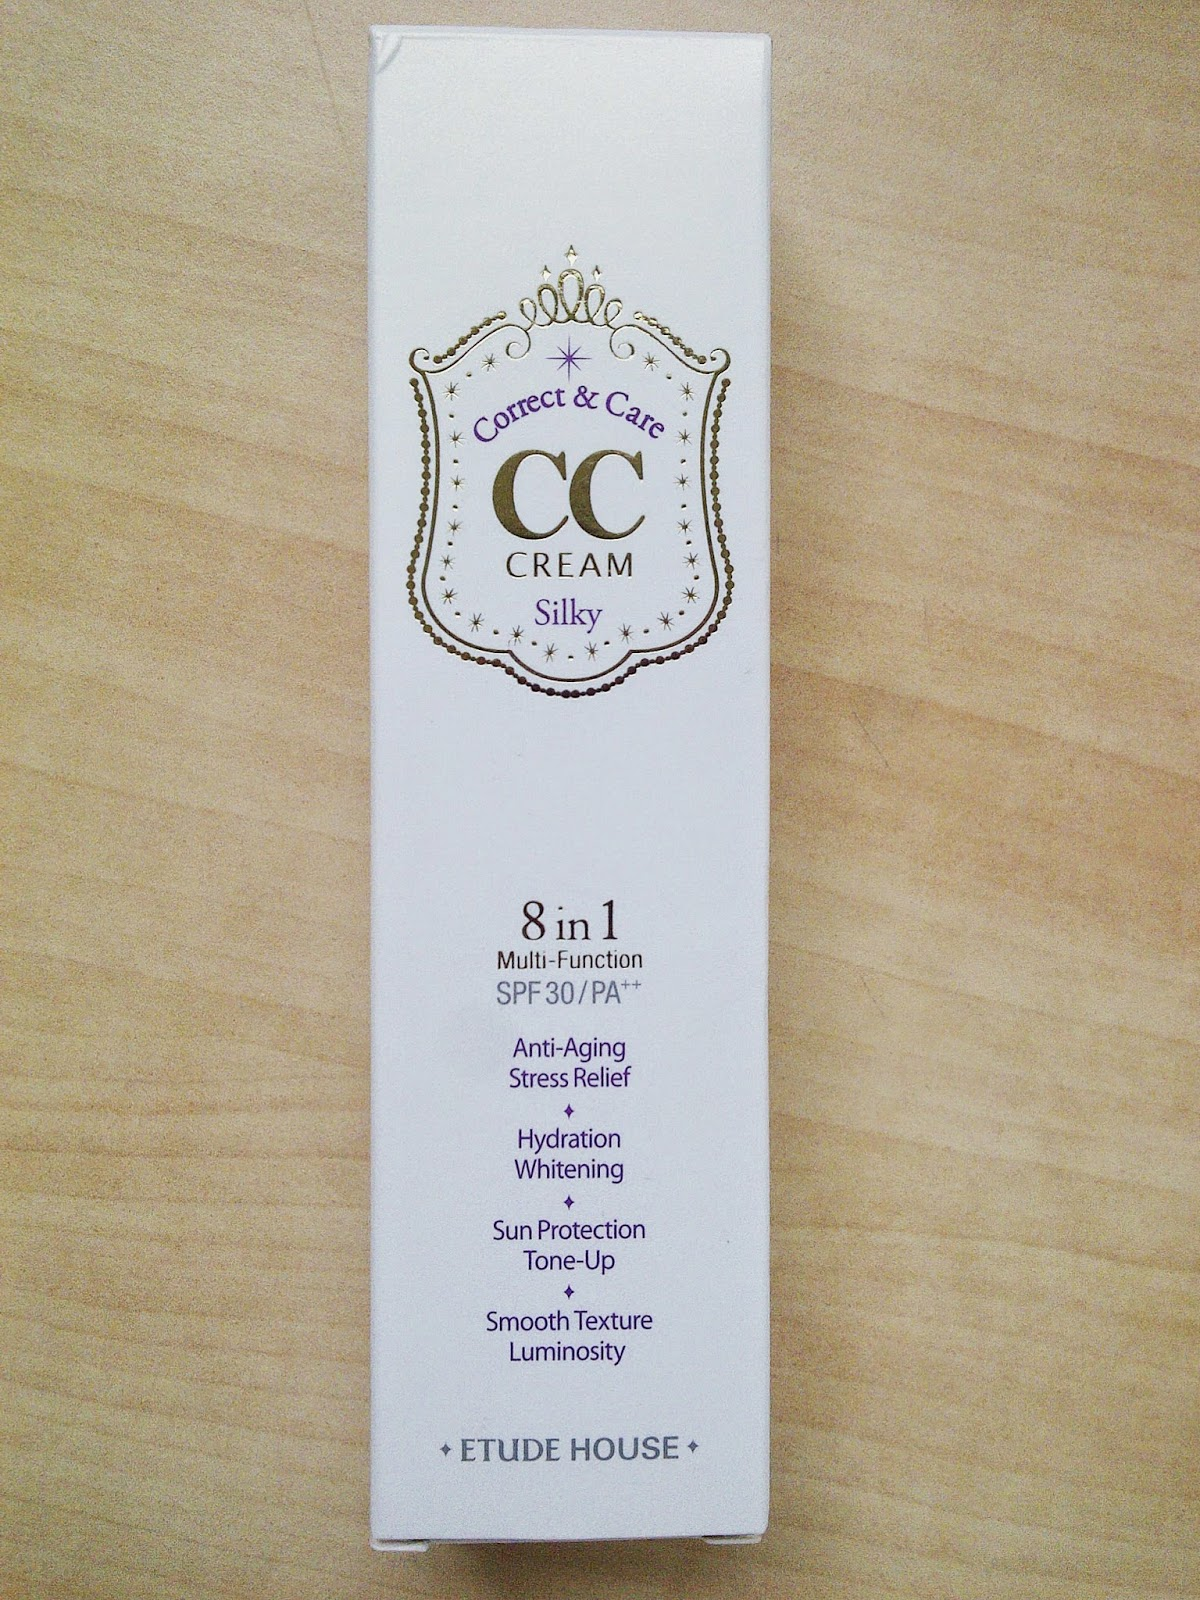 Phieselphie Etude House Cc Cream Silky 8 In 1 Spf30 Pa